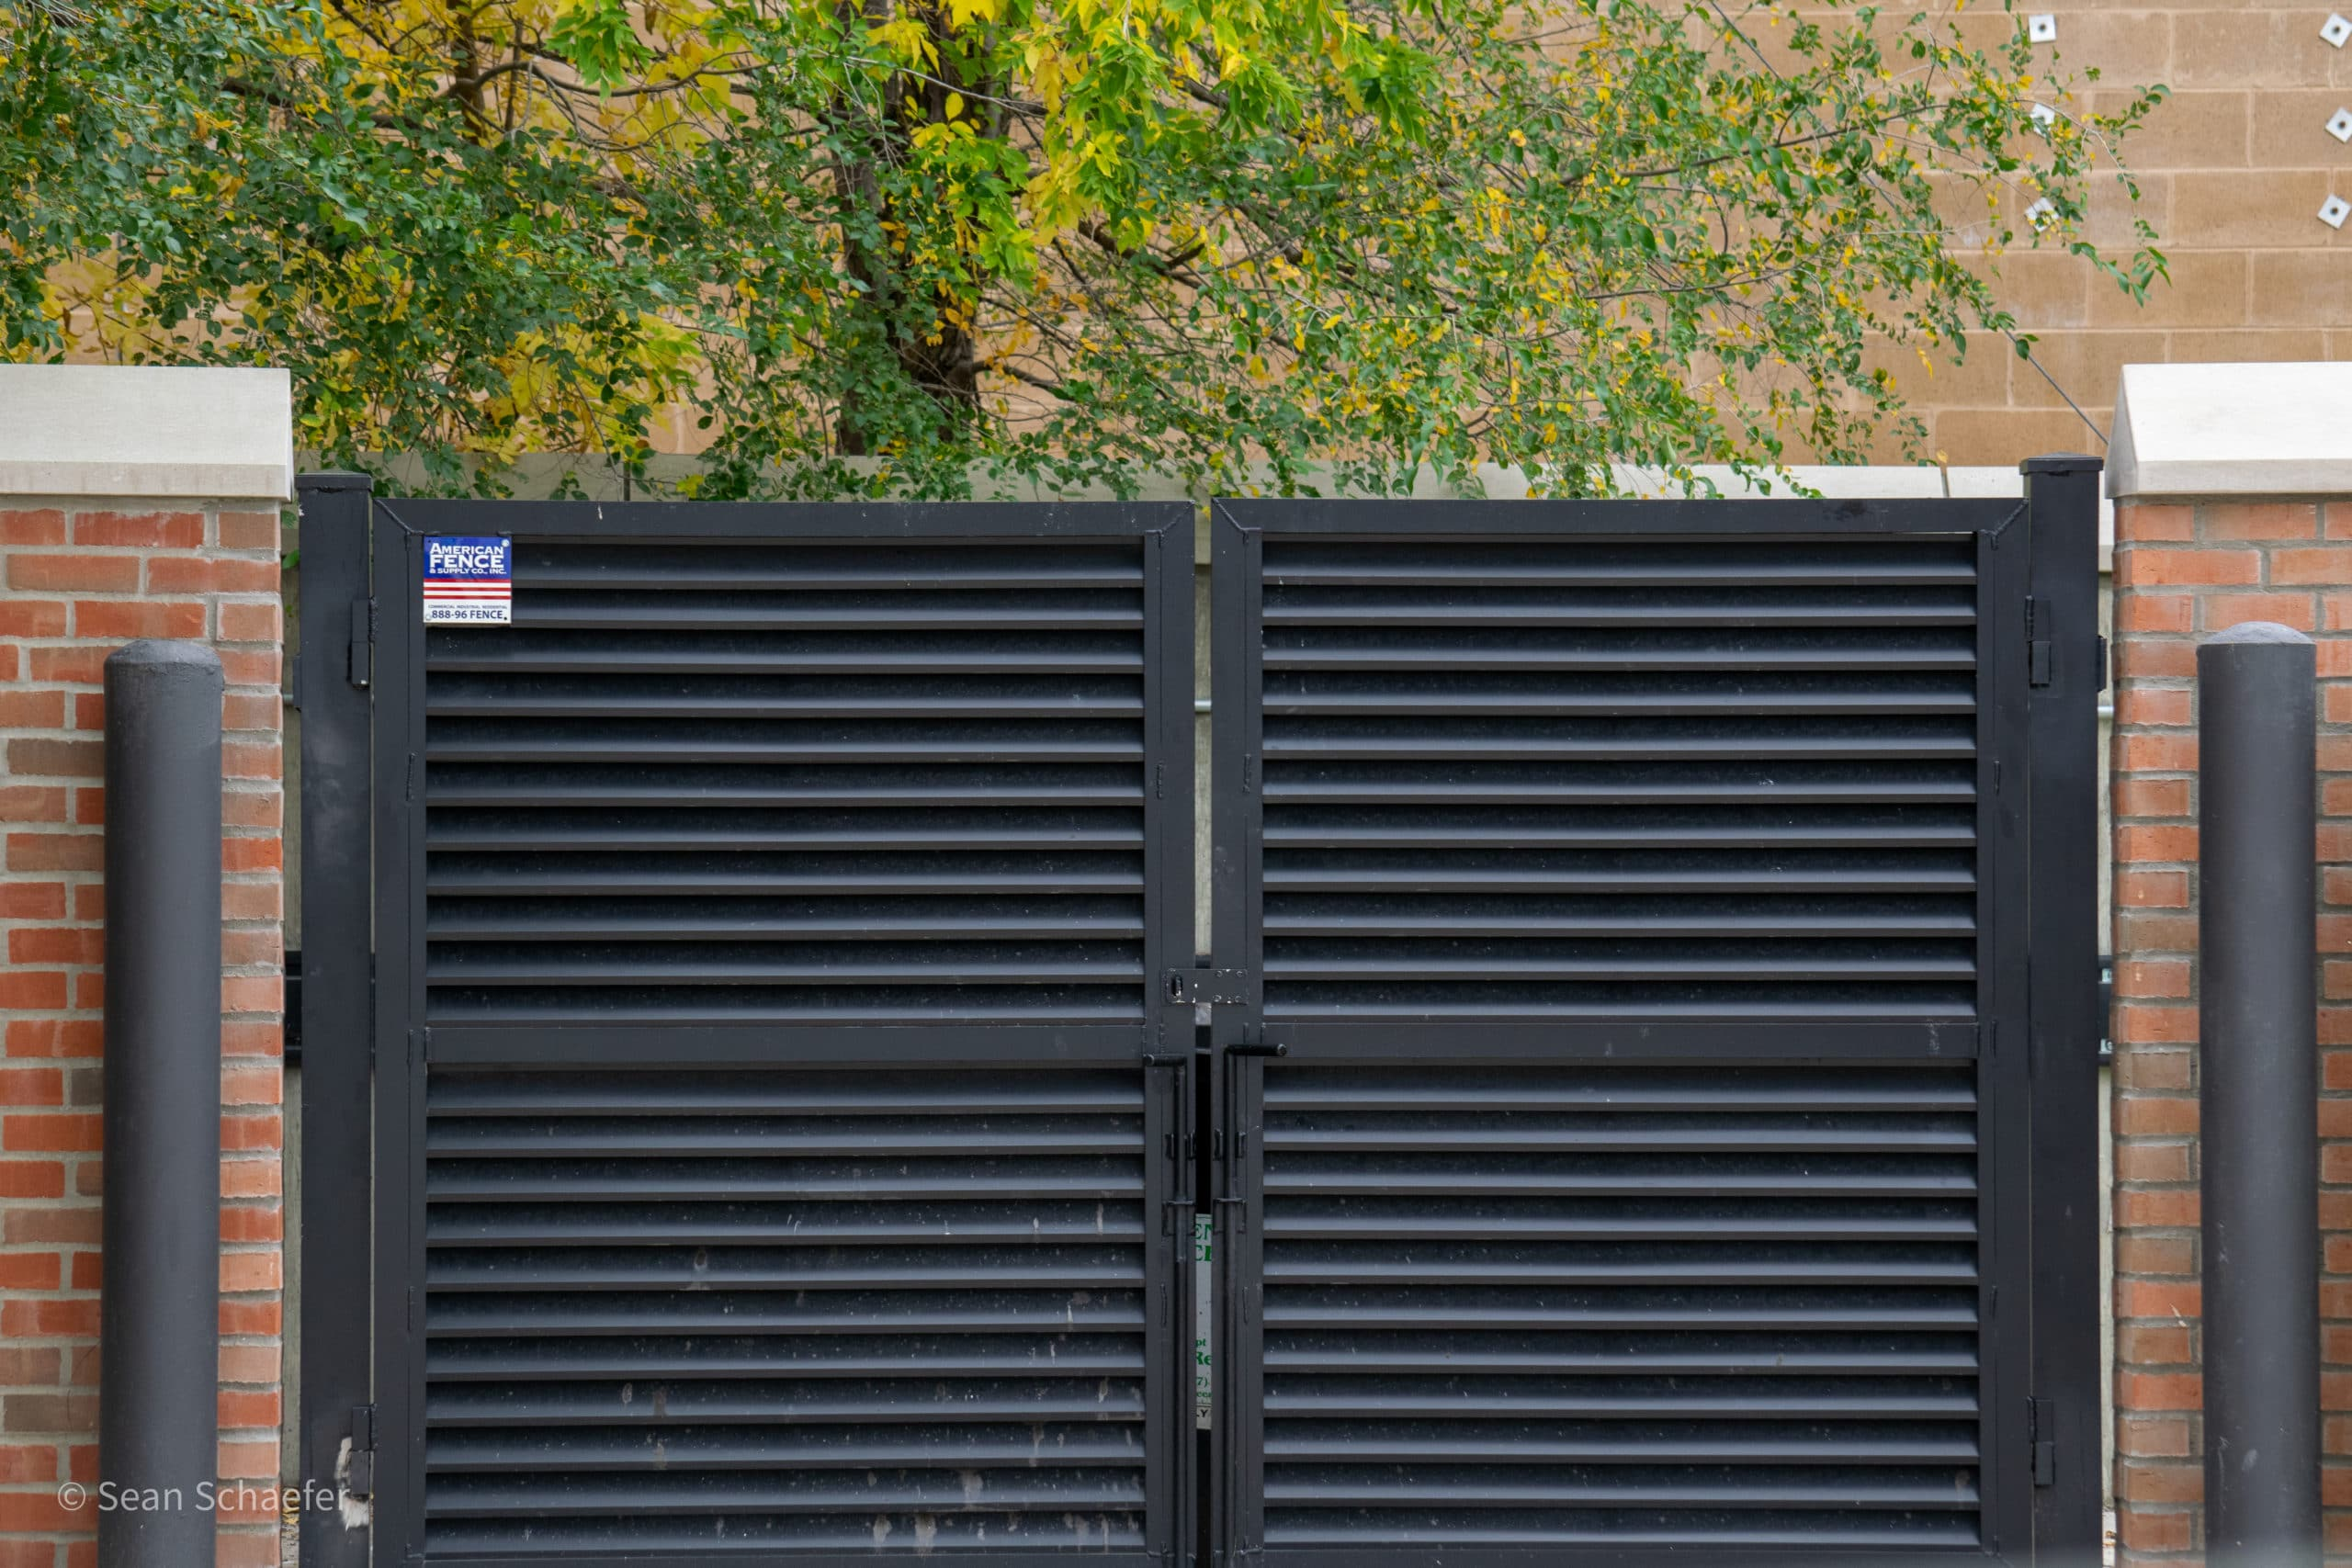 Image of commercial AmeriLouver® dumpster gates at Villa at City Center